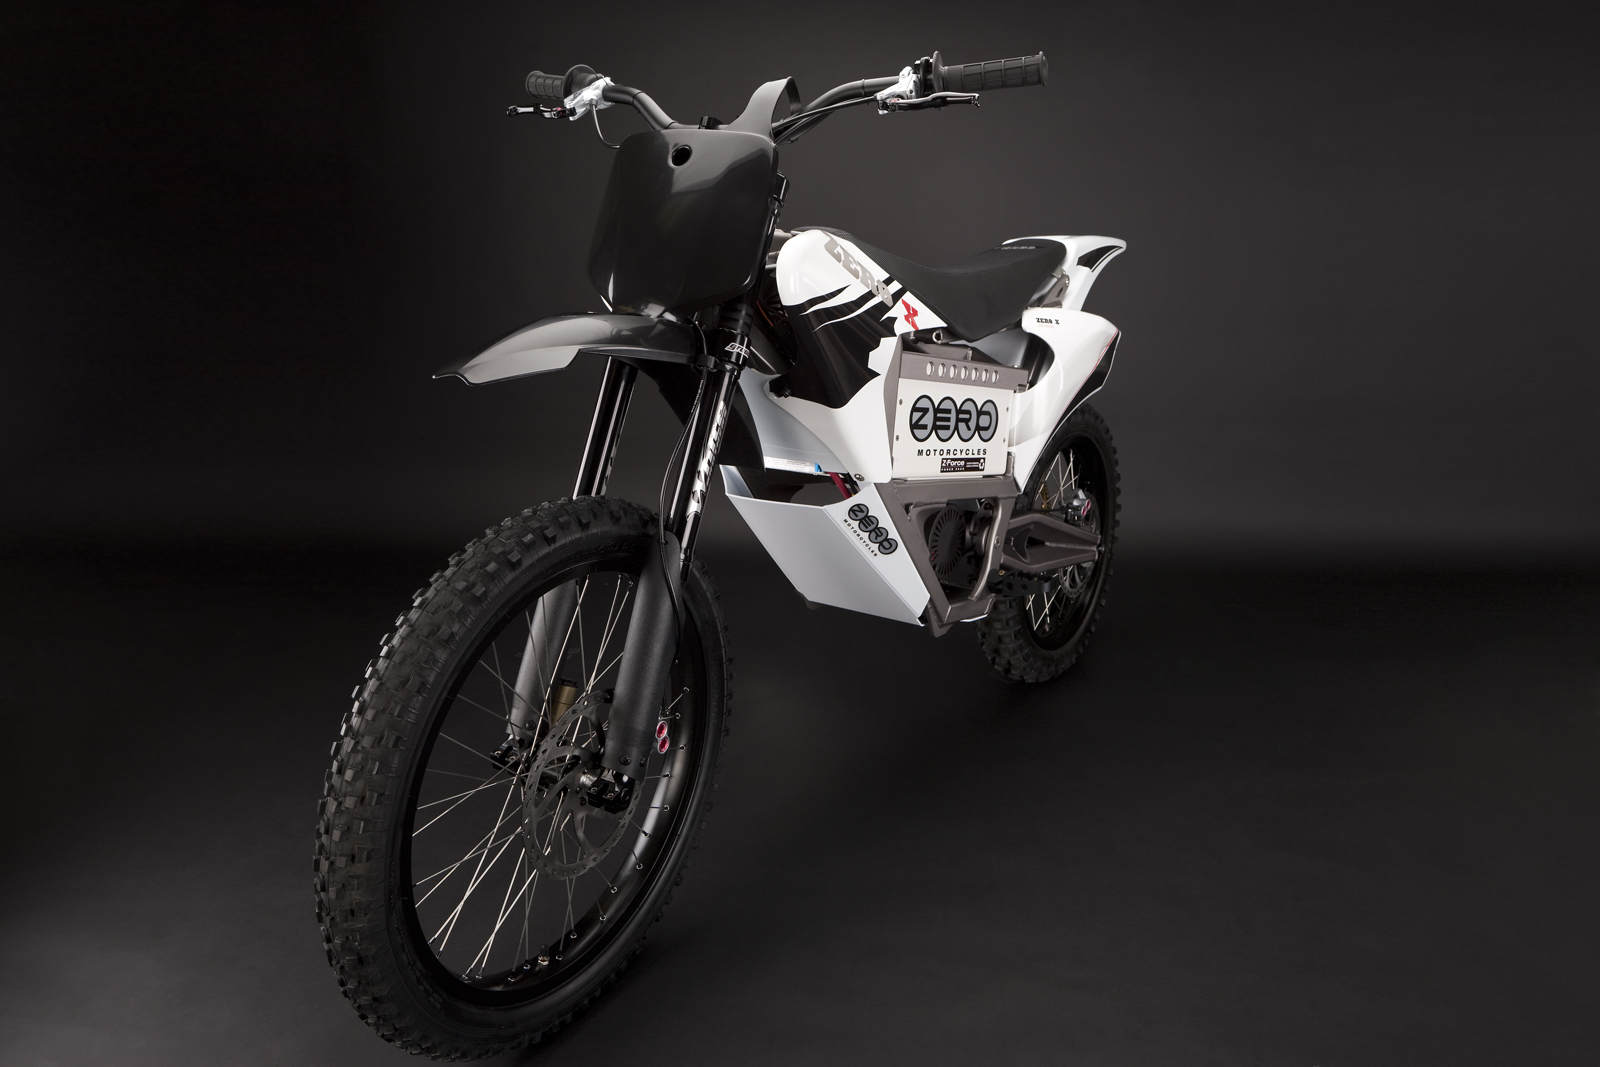 '.2010 Zero X Electric Motorcycle: Front Fork.'